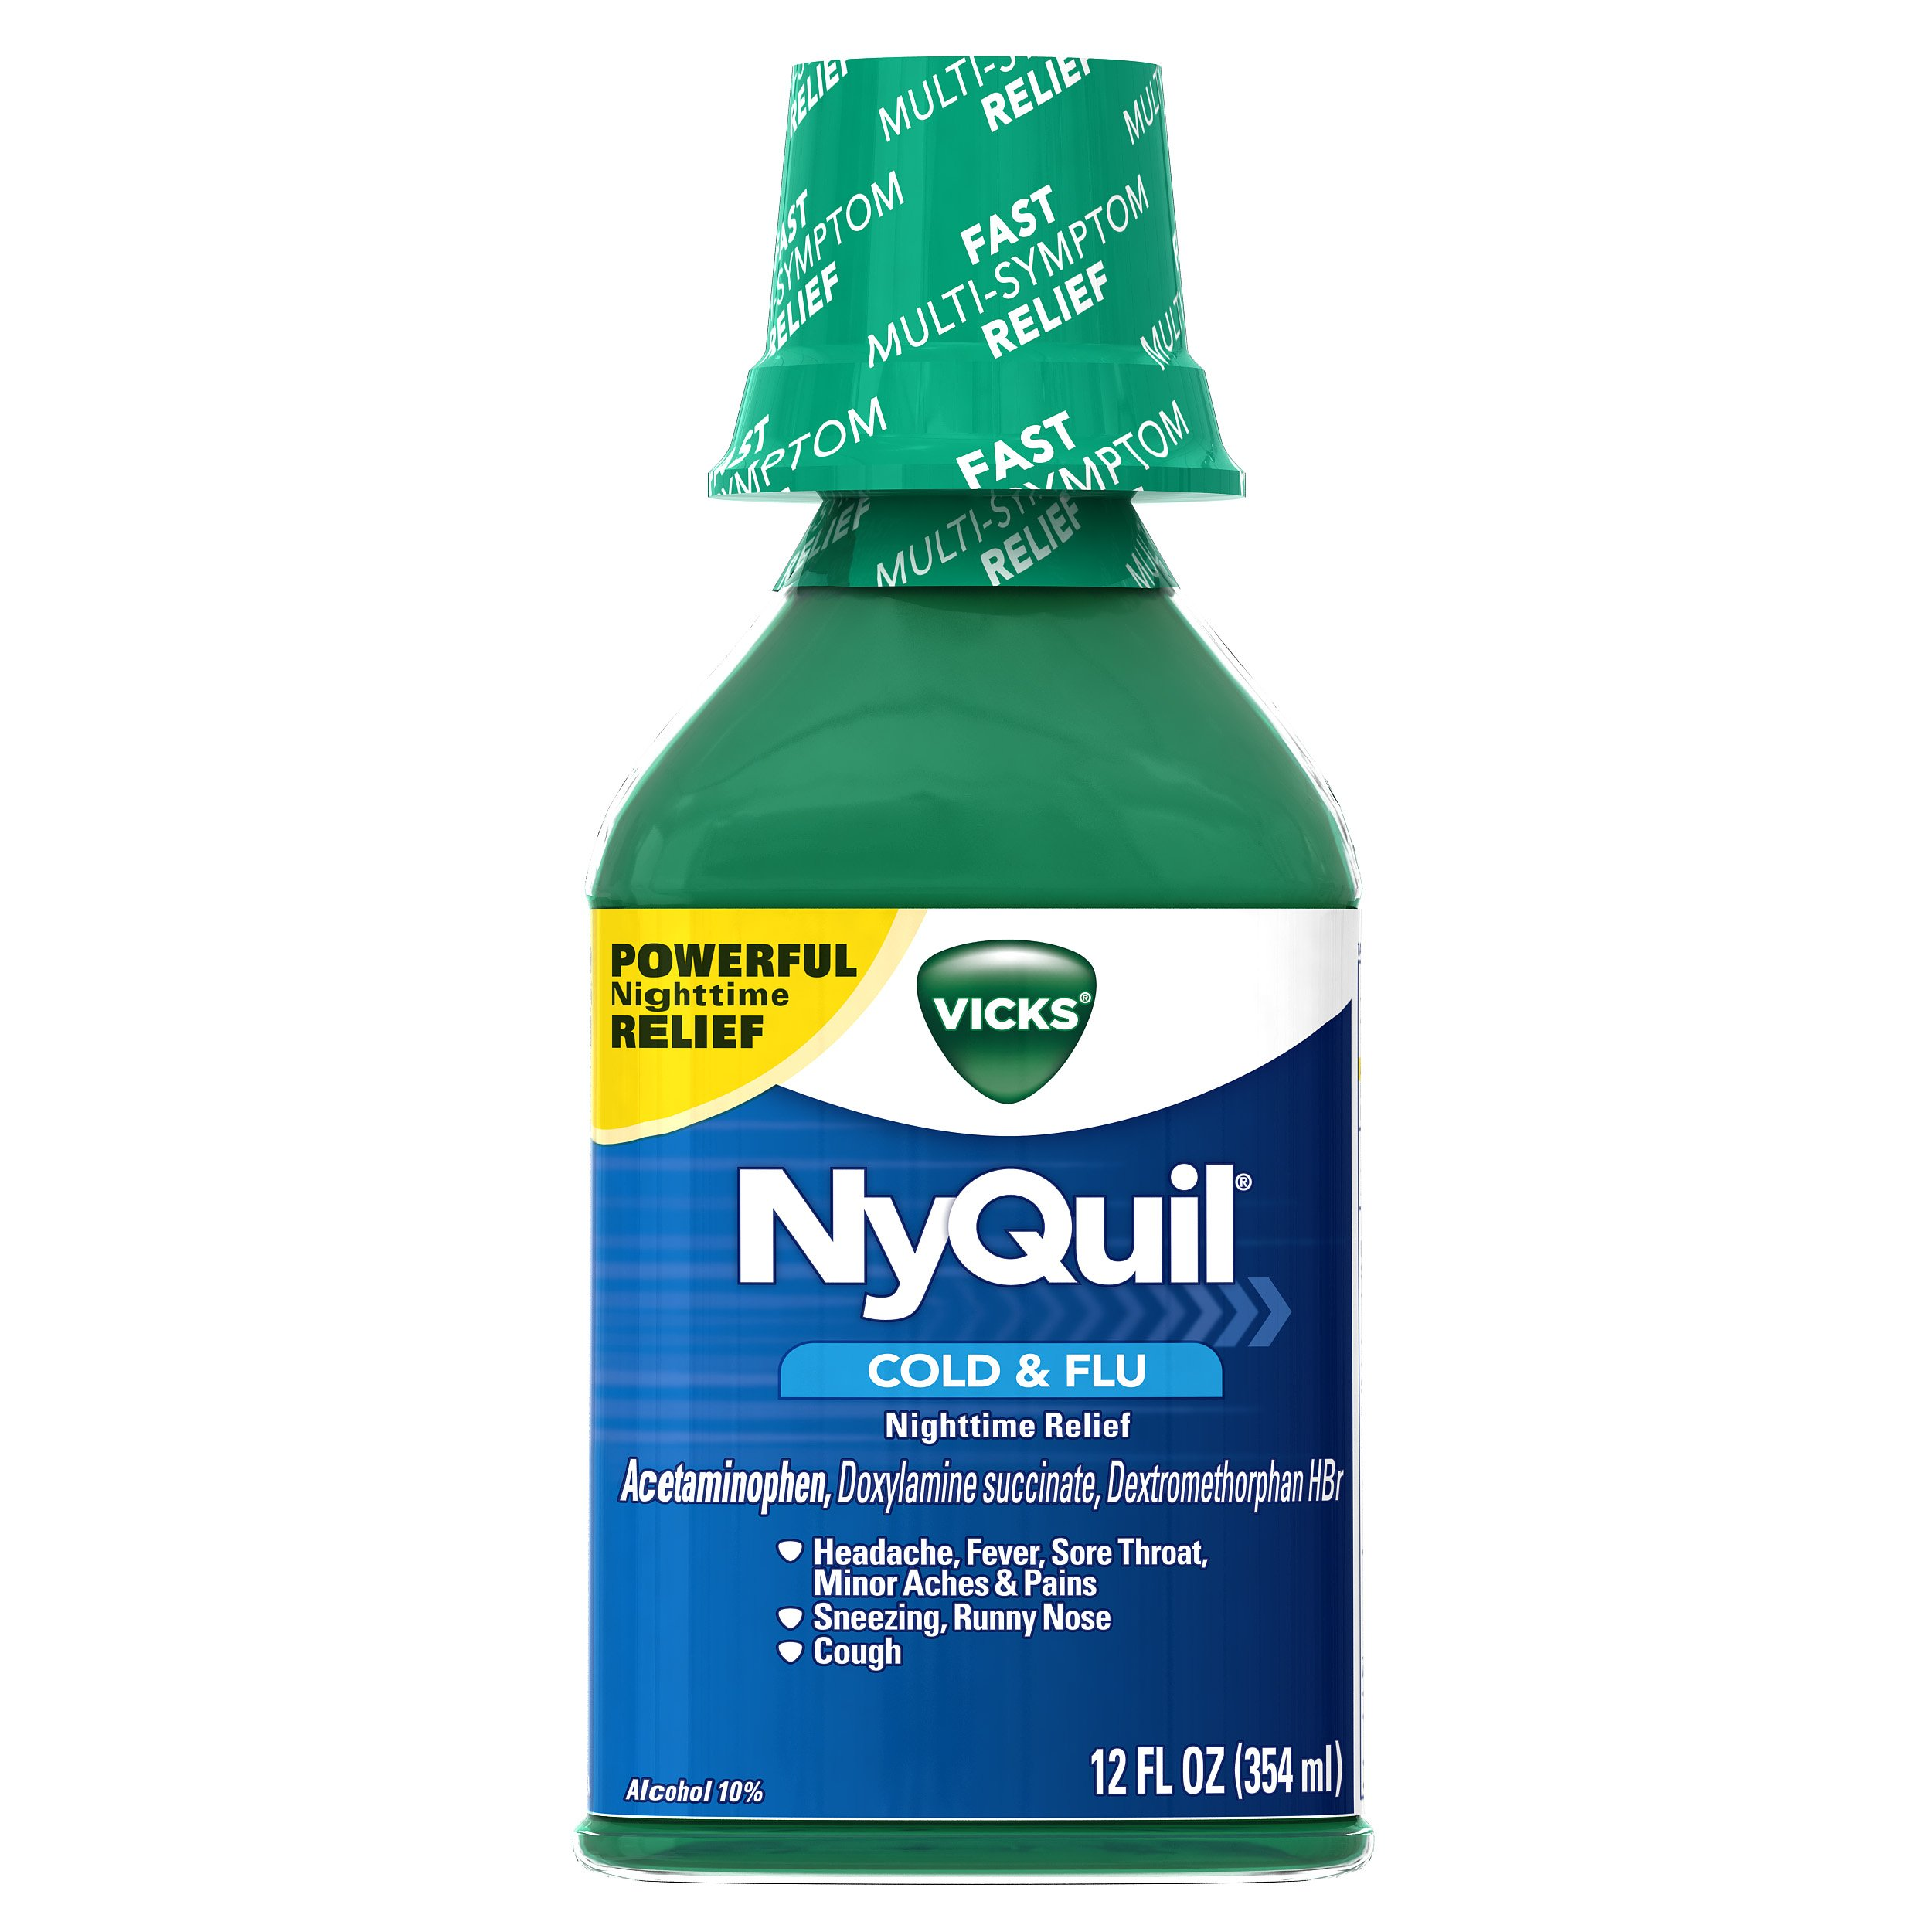 Vicks NyQuil Cold & Flu Nighttime Relief Original Flavor Liquid 12 fl oz (Pack of 12) by Vicks